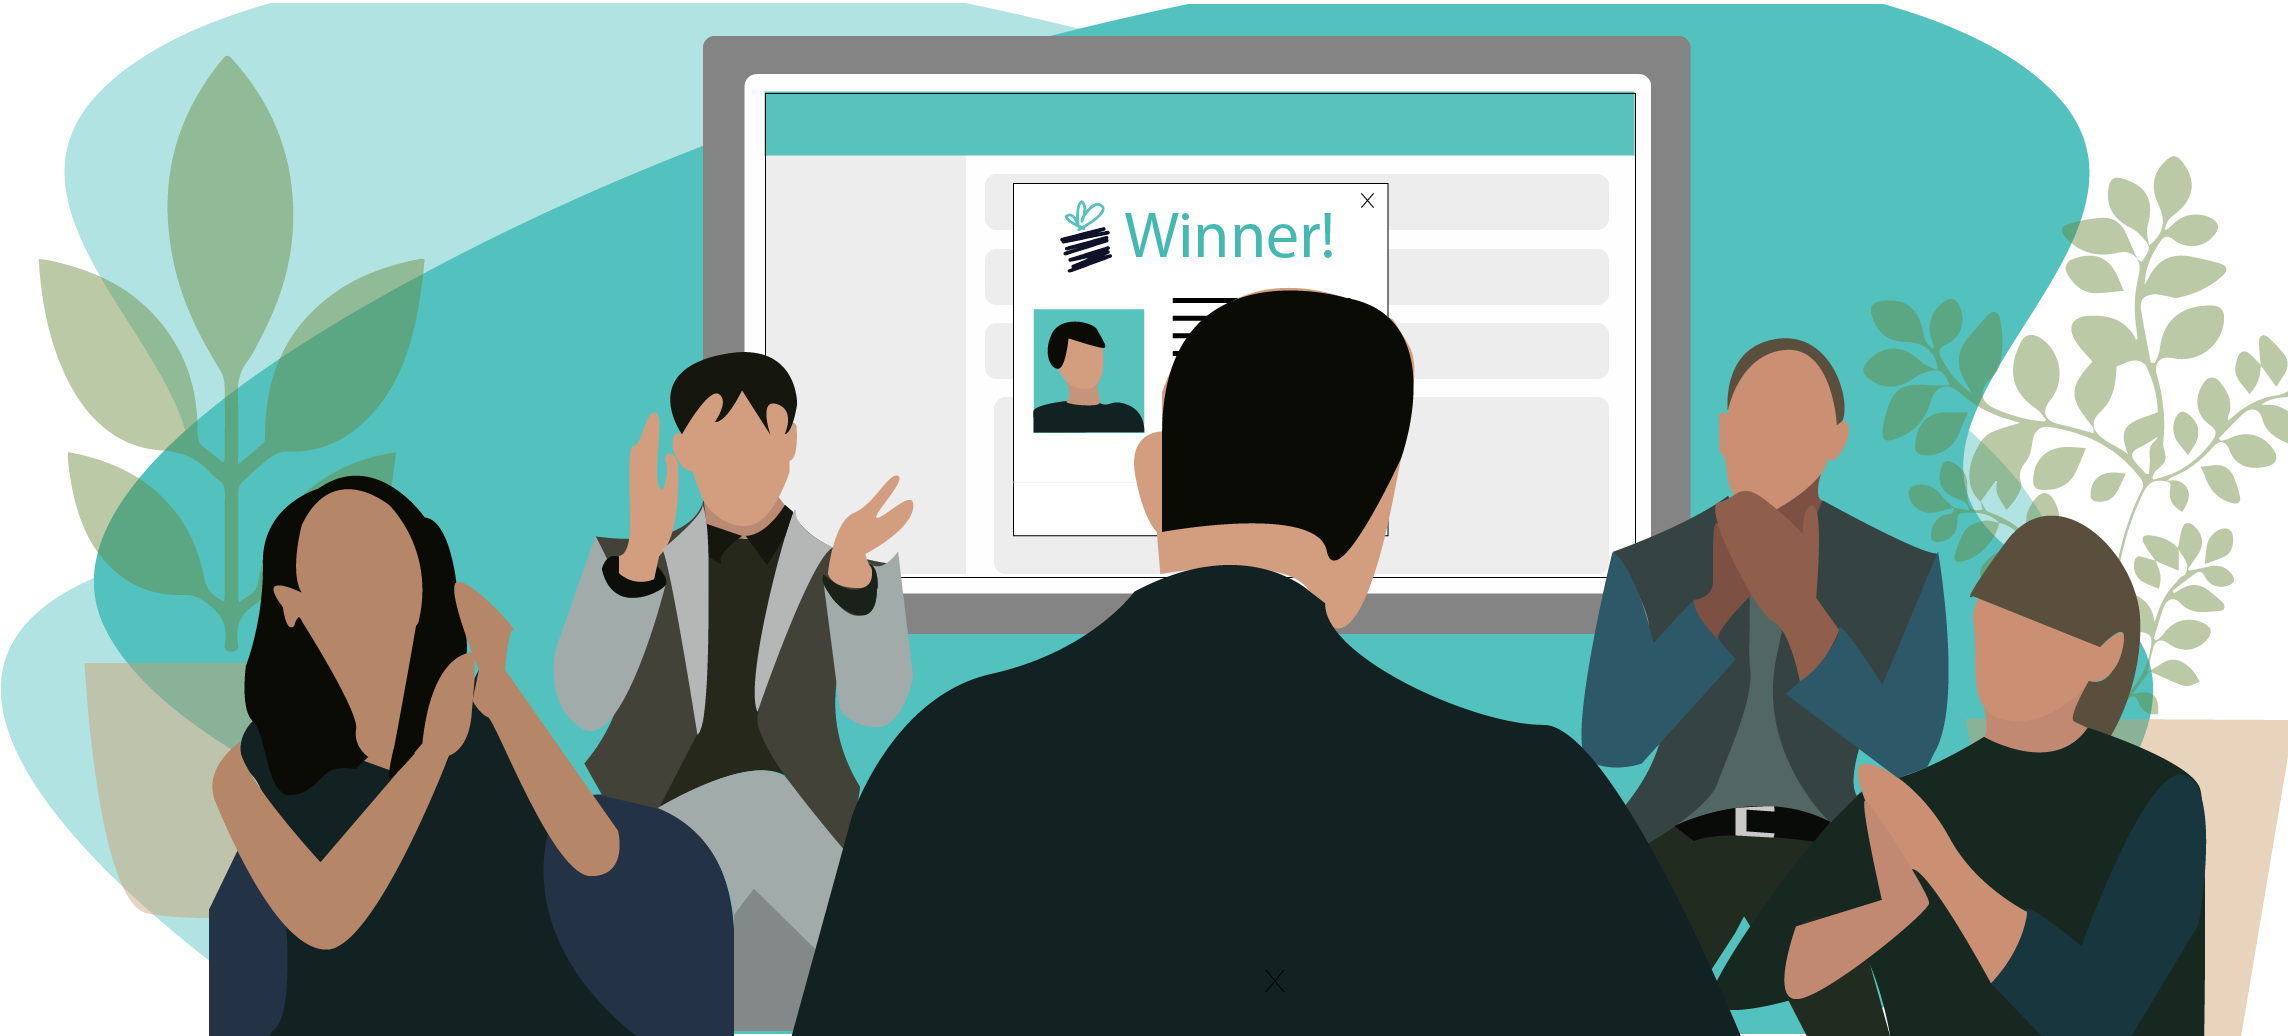 How to Build an Impactful Employee Recognition Program